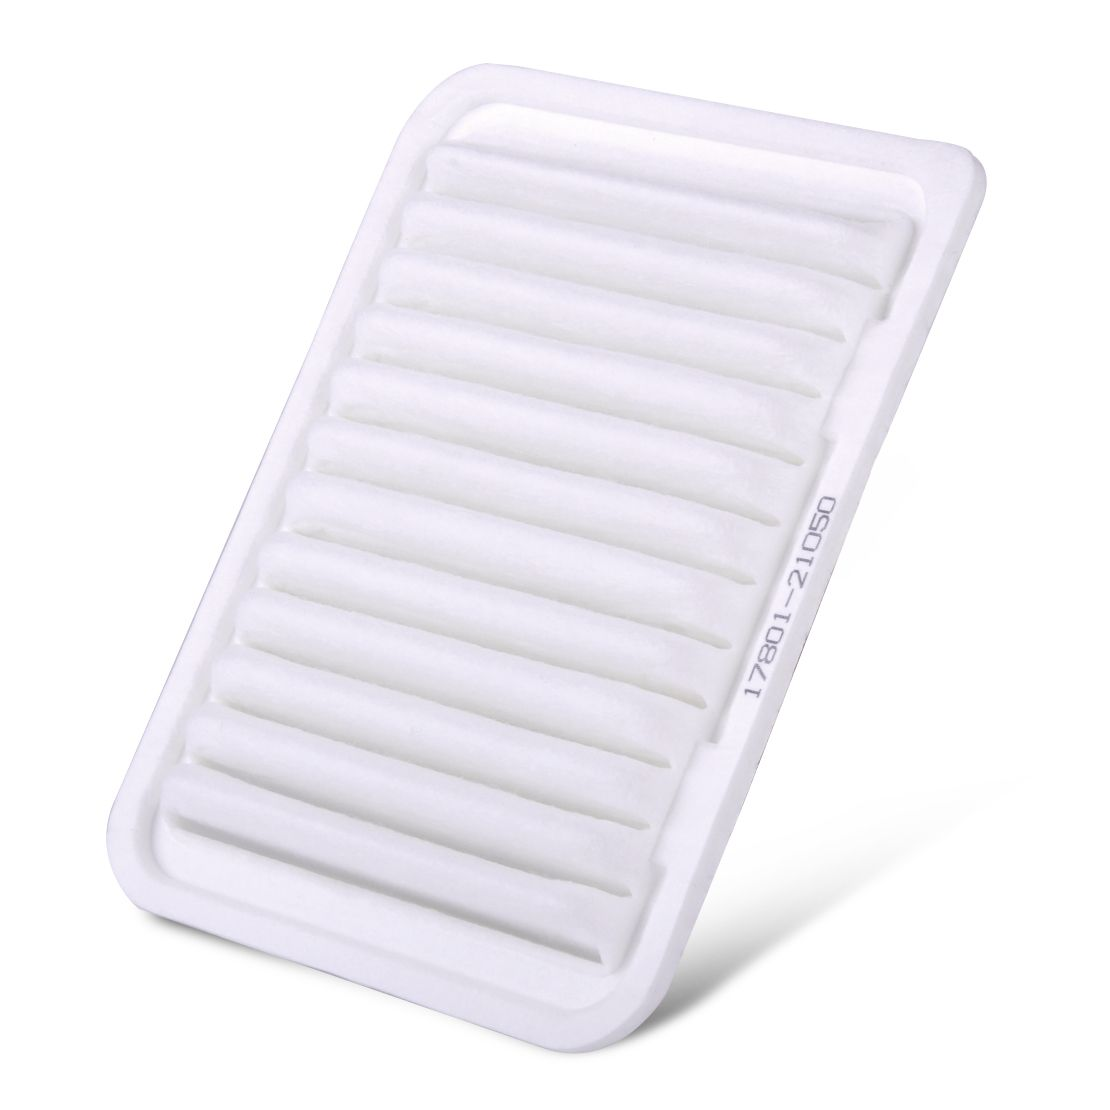 AIR FILTER DENSO FOR TOYOTA (PART NO. 17801-21050)